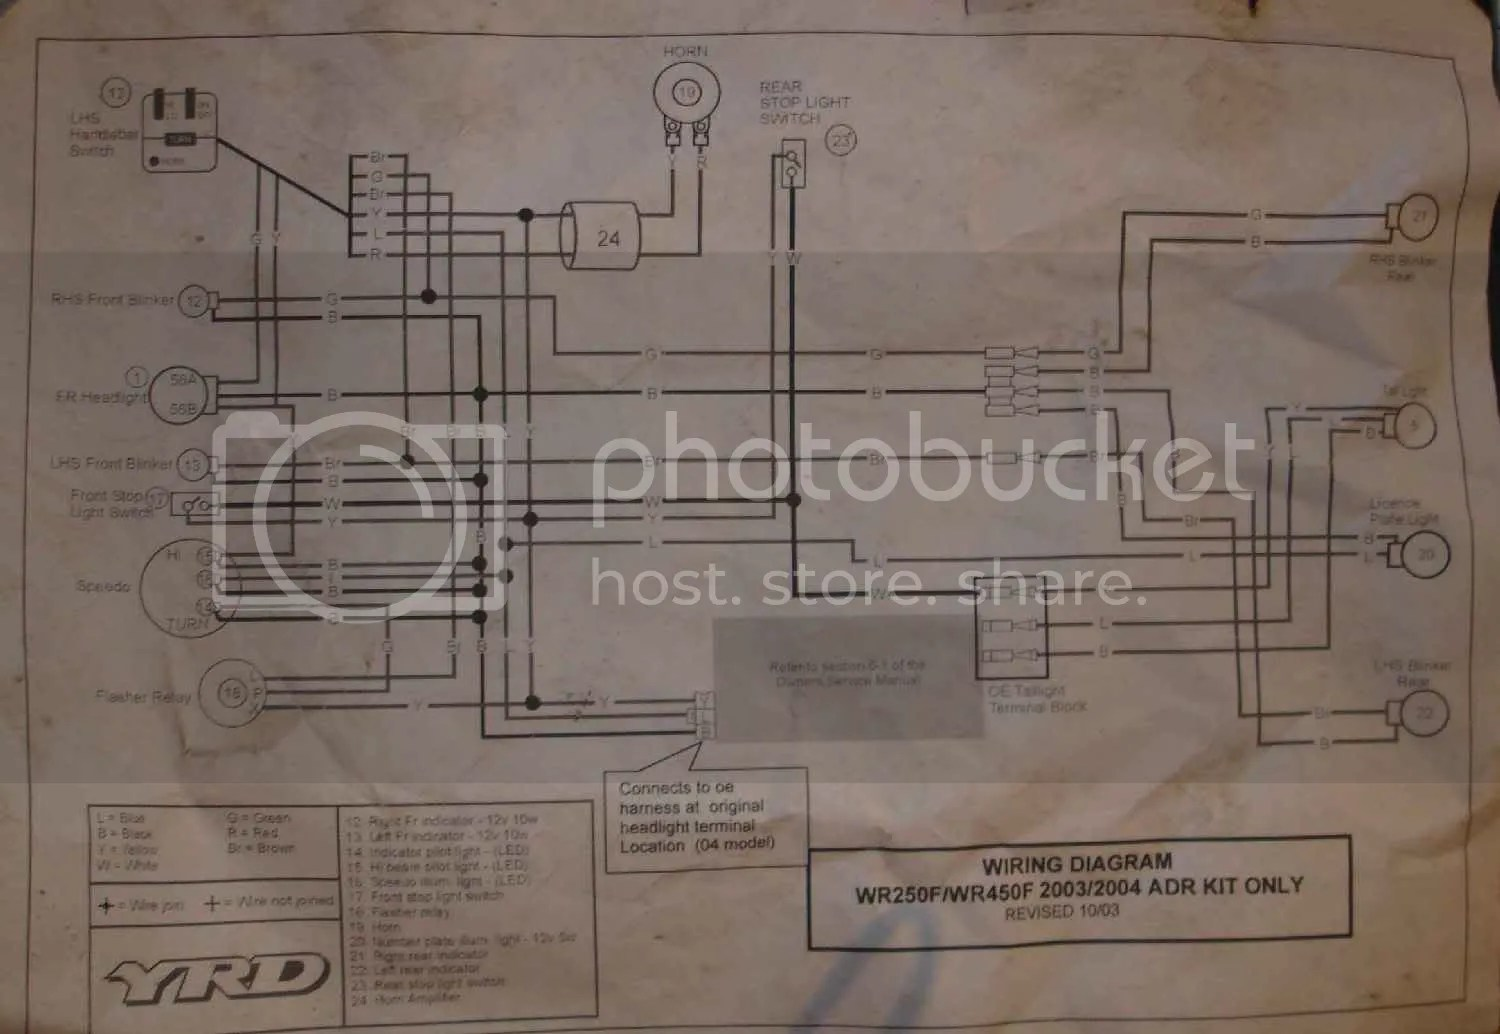 hight resolution of wr450 headlight wiring diagram wiring diagram img wr450 headlight wiring diagram 03 wr450f adr wiring diagrams